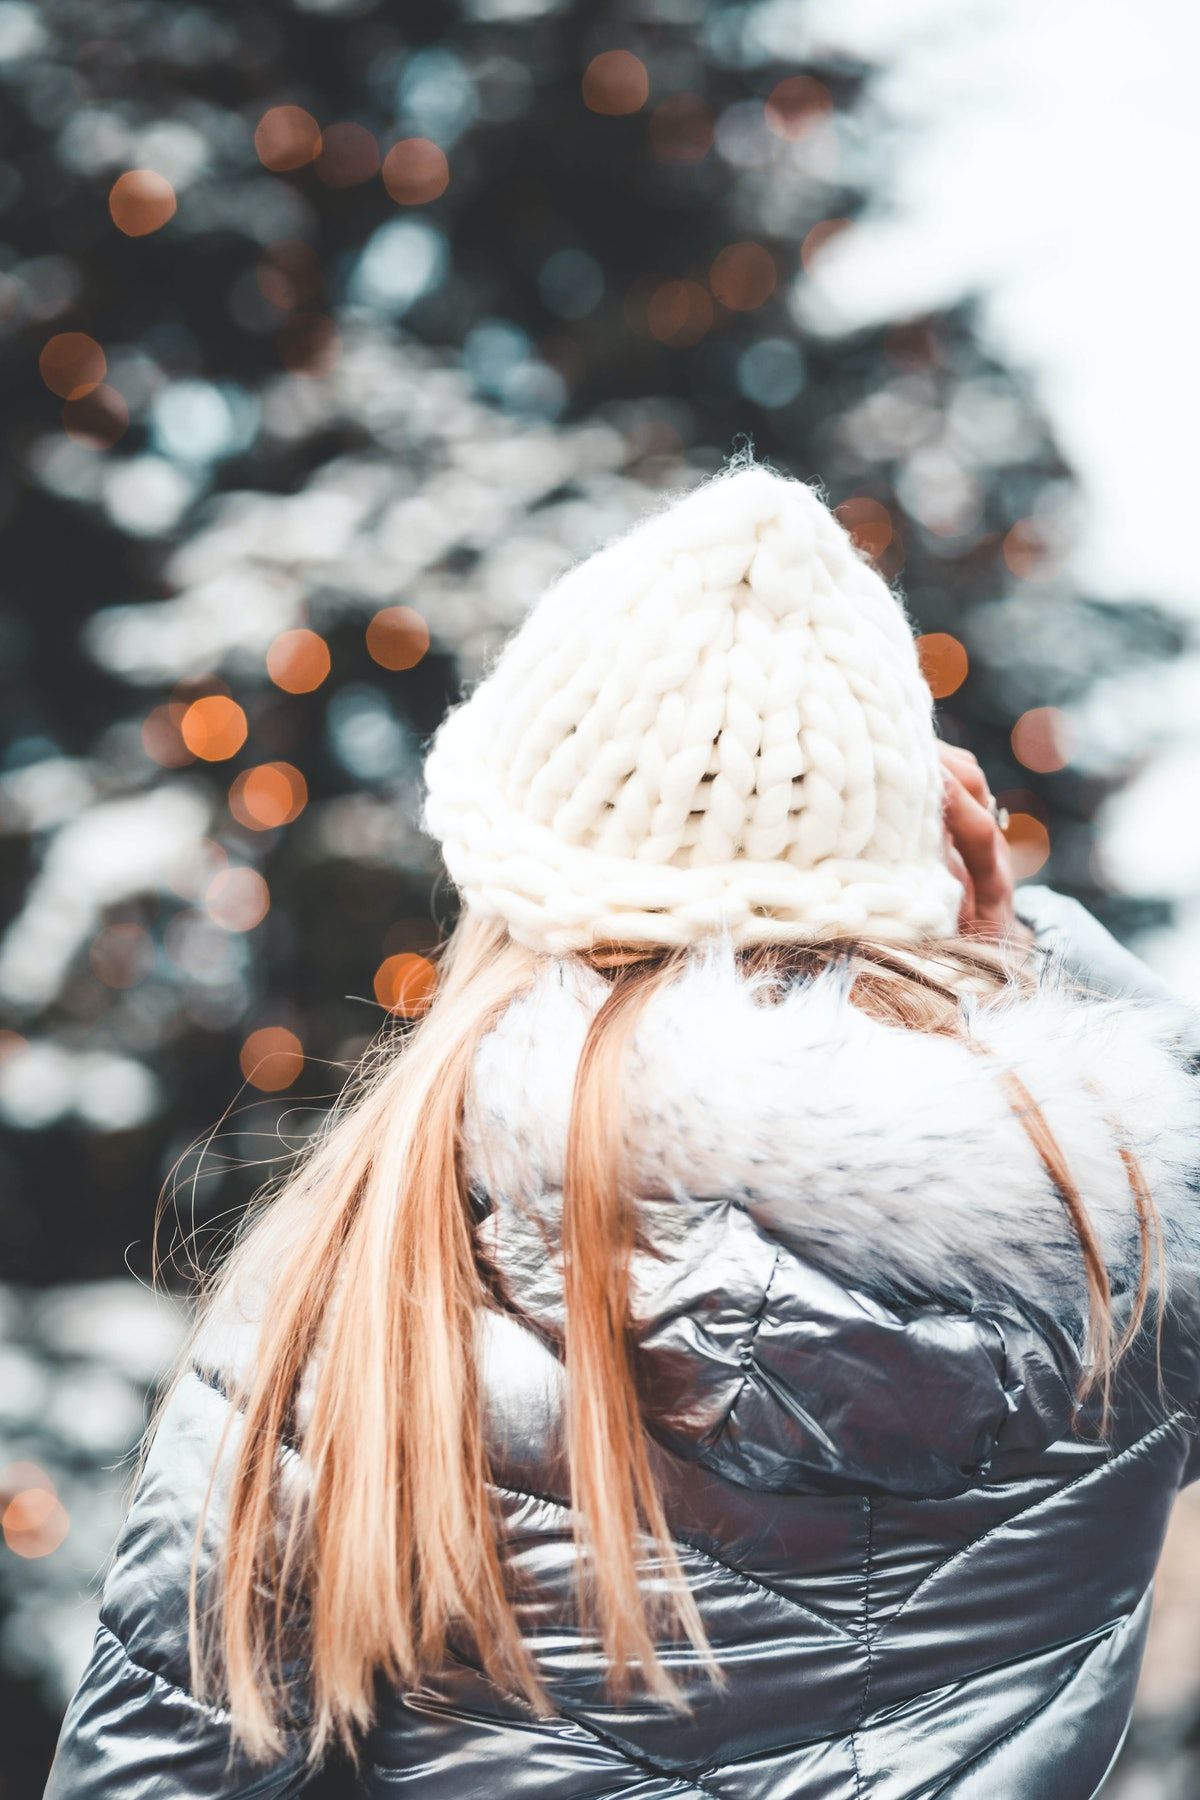 A blonde woman faces a holiday tree at the market in a metallic coat and knit hat.